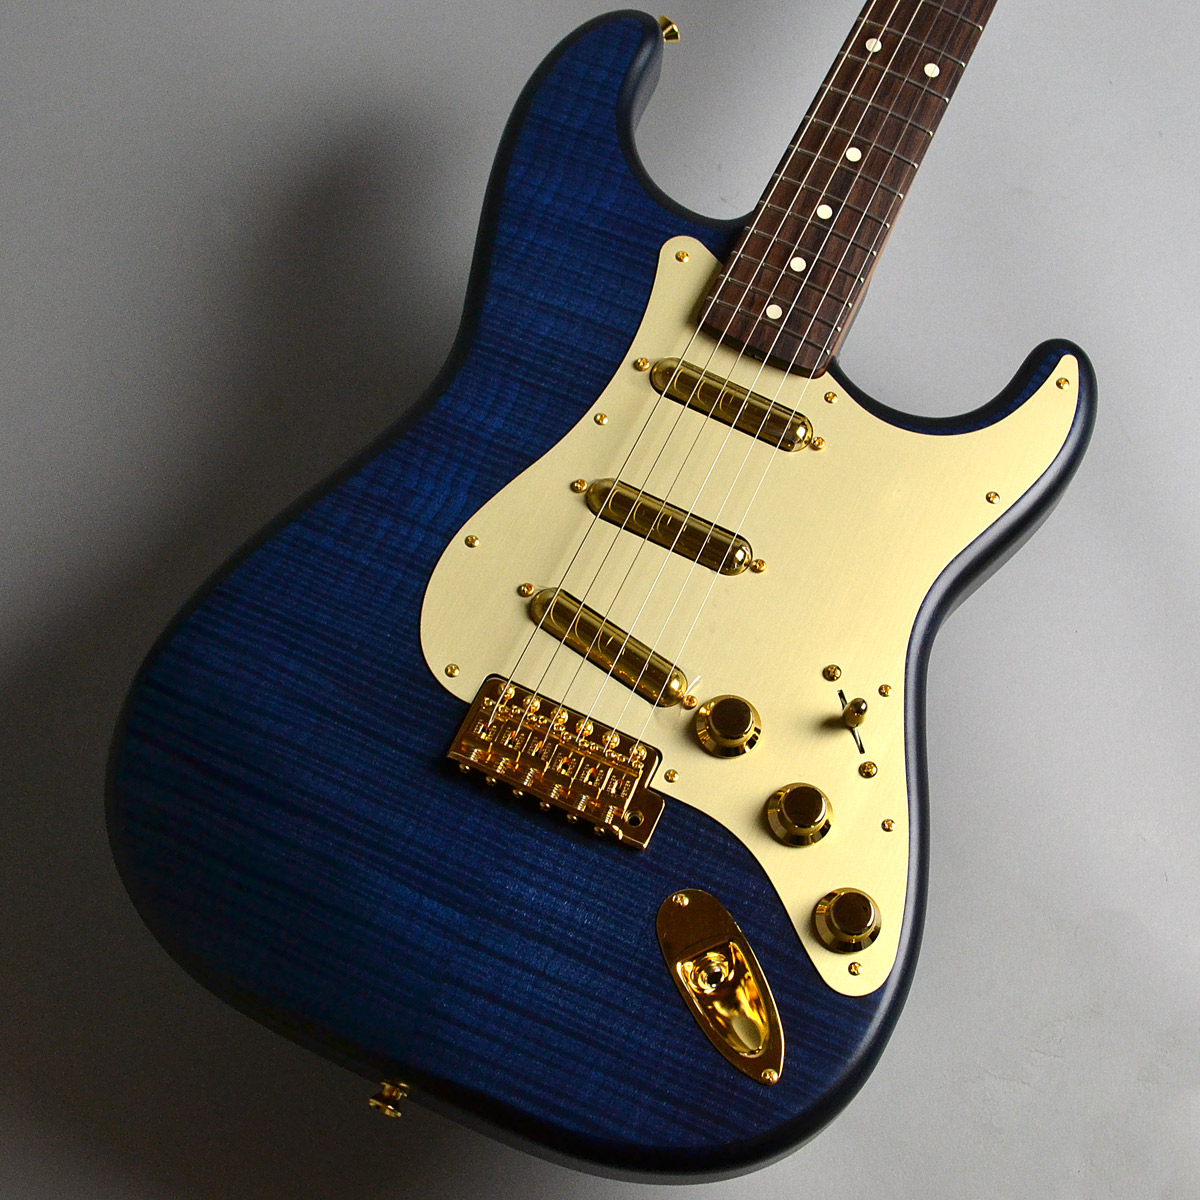 Made in Japan 2020 Limited Collection Stratocasterのボディ画像